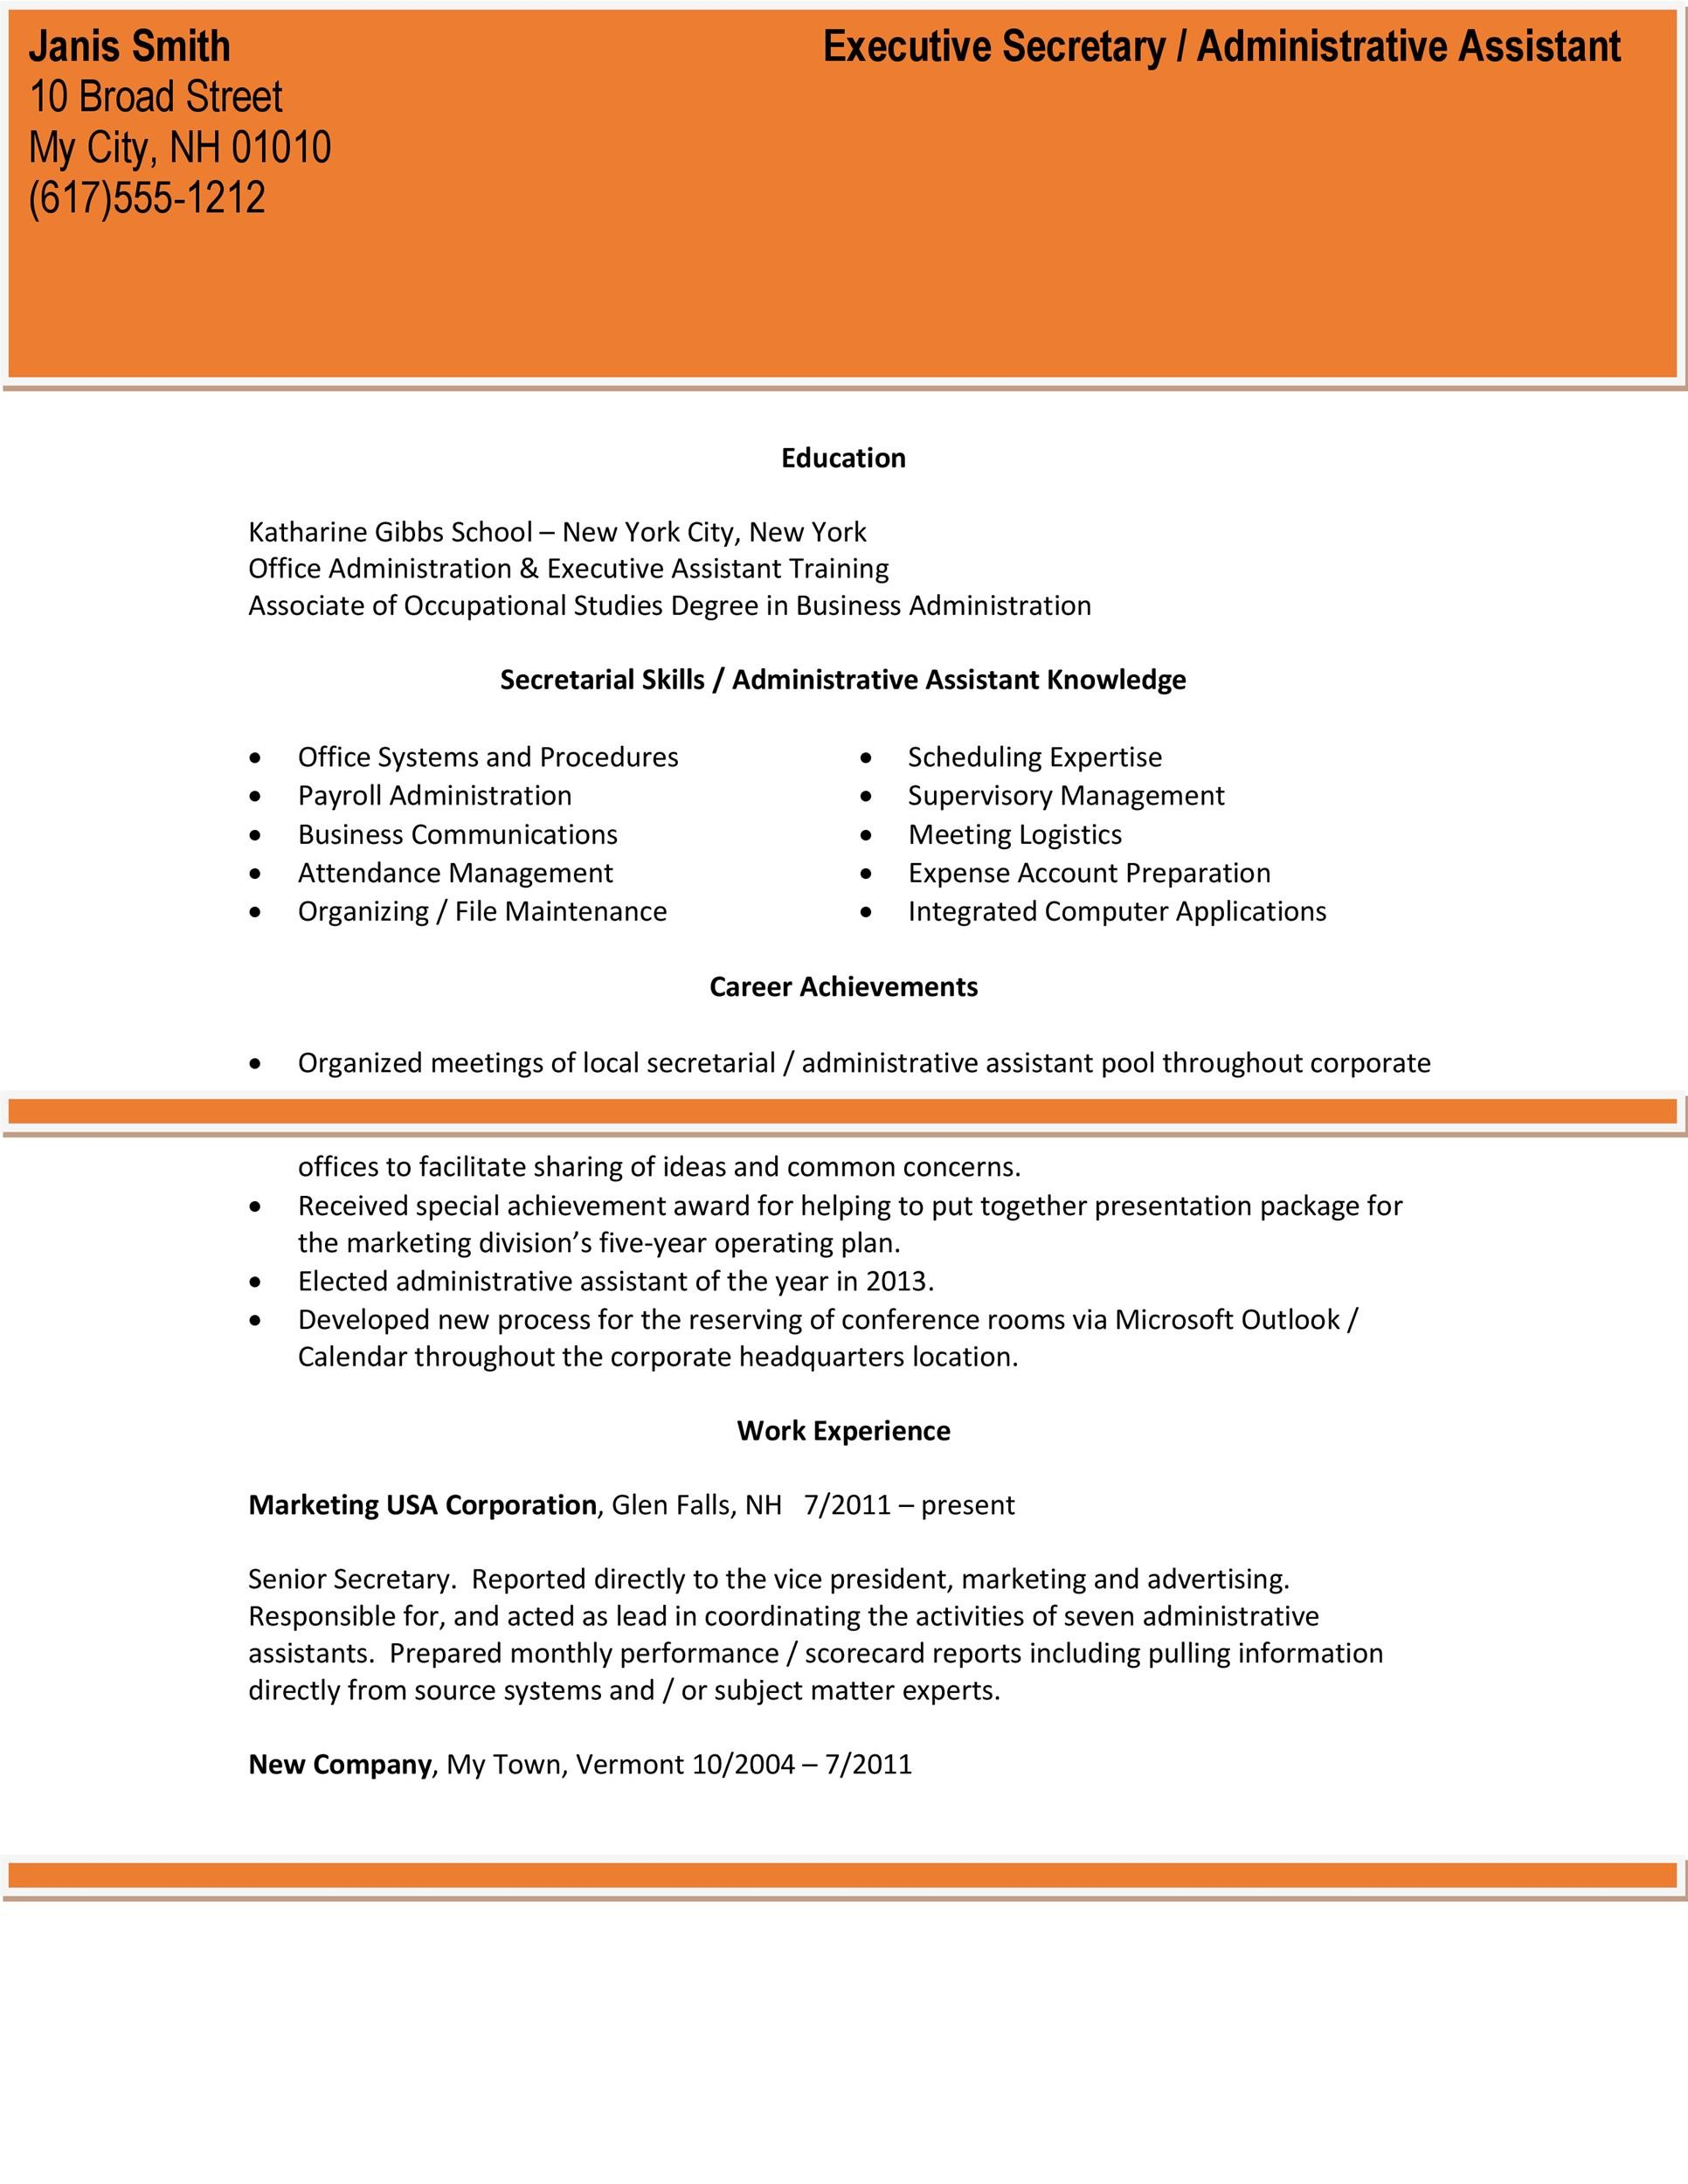 Free Administrative Assistant Resume Template 18